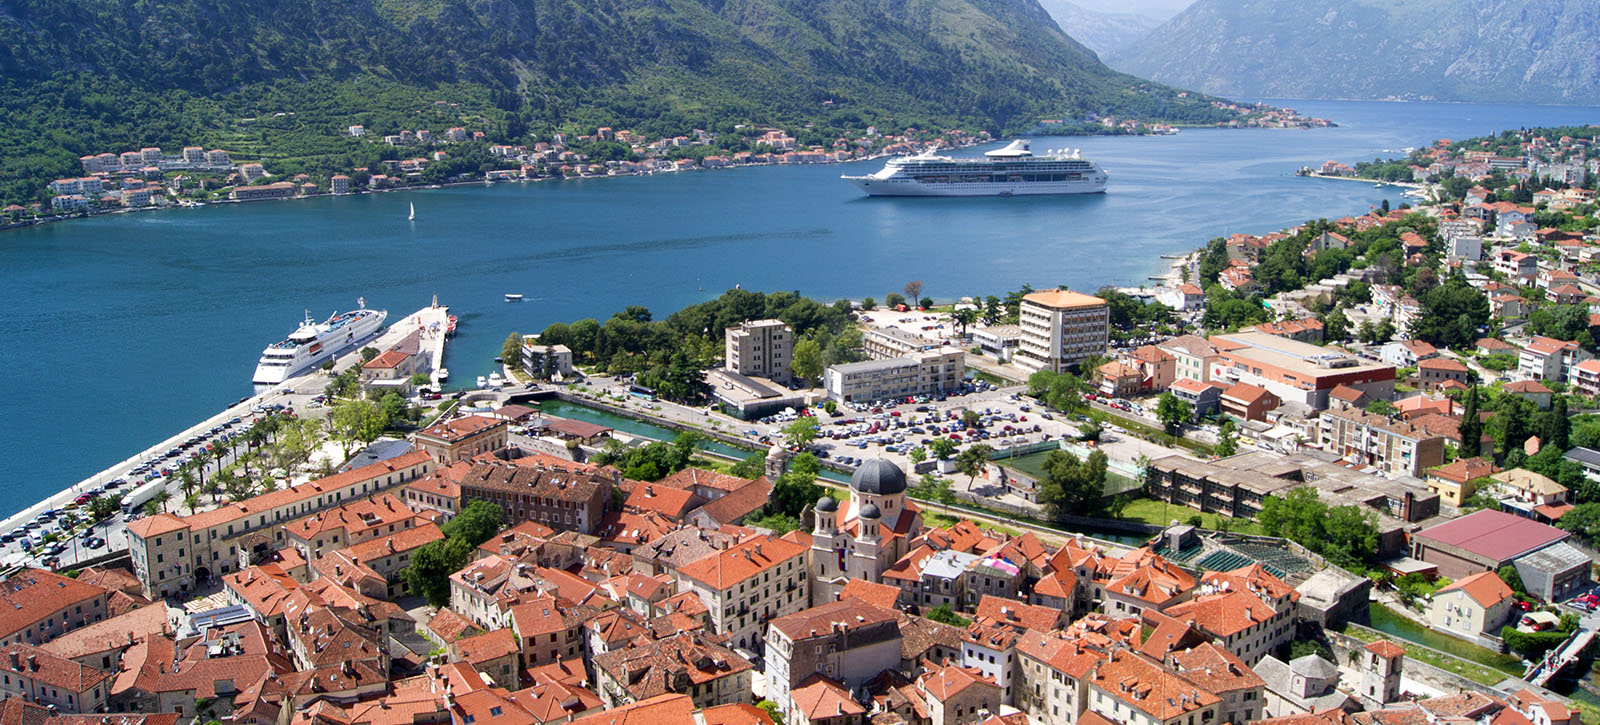 Montenegro Citizenship by Investment Program from €350,000.